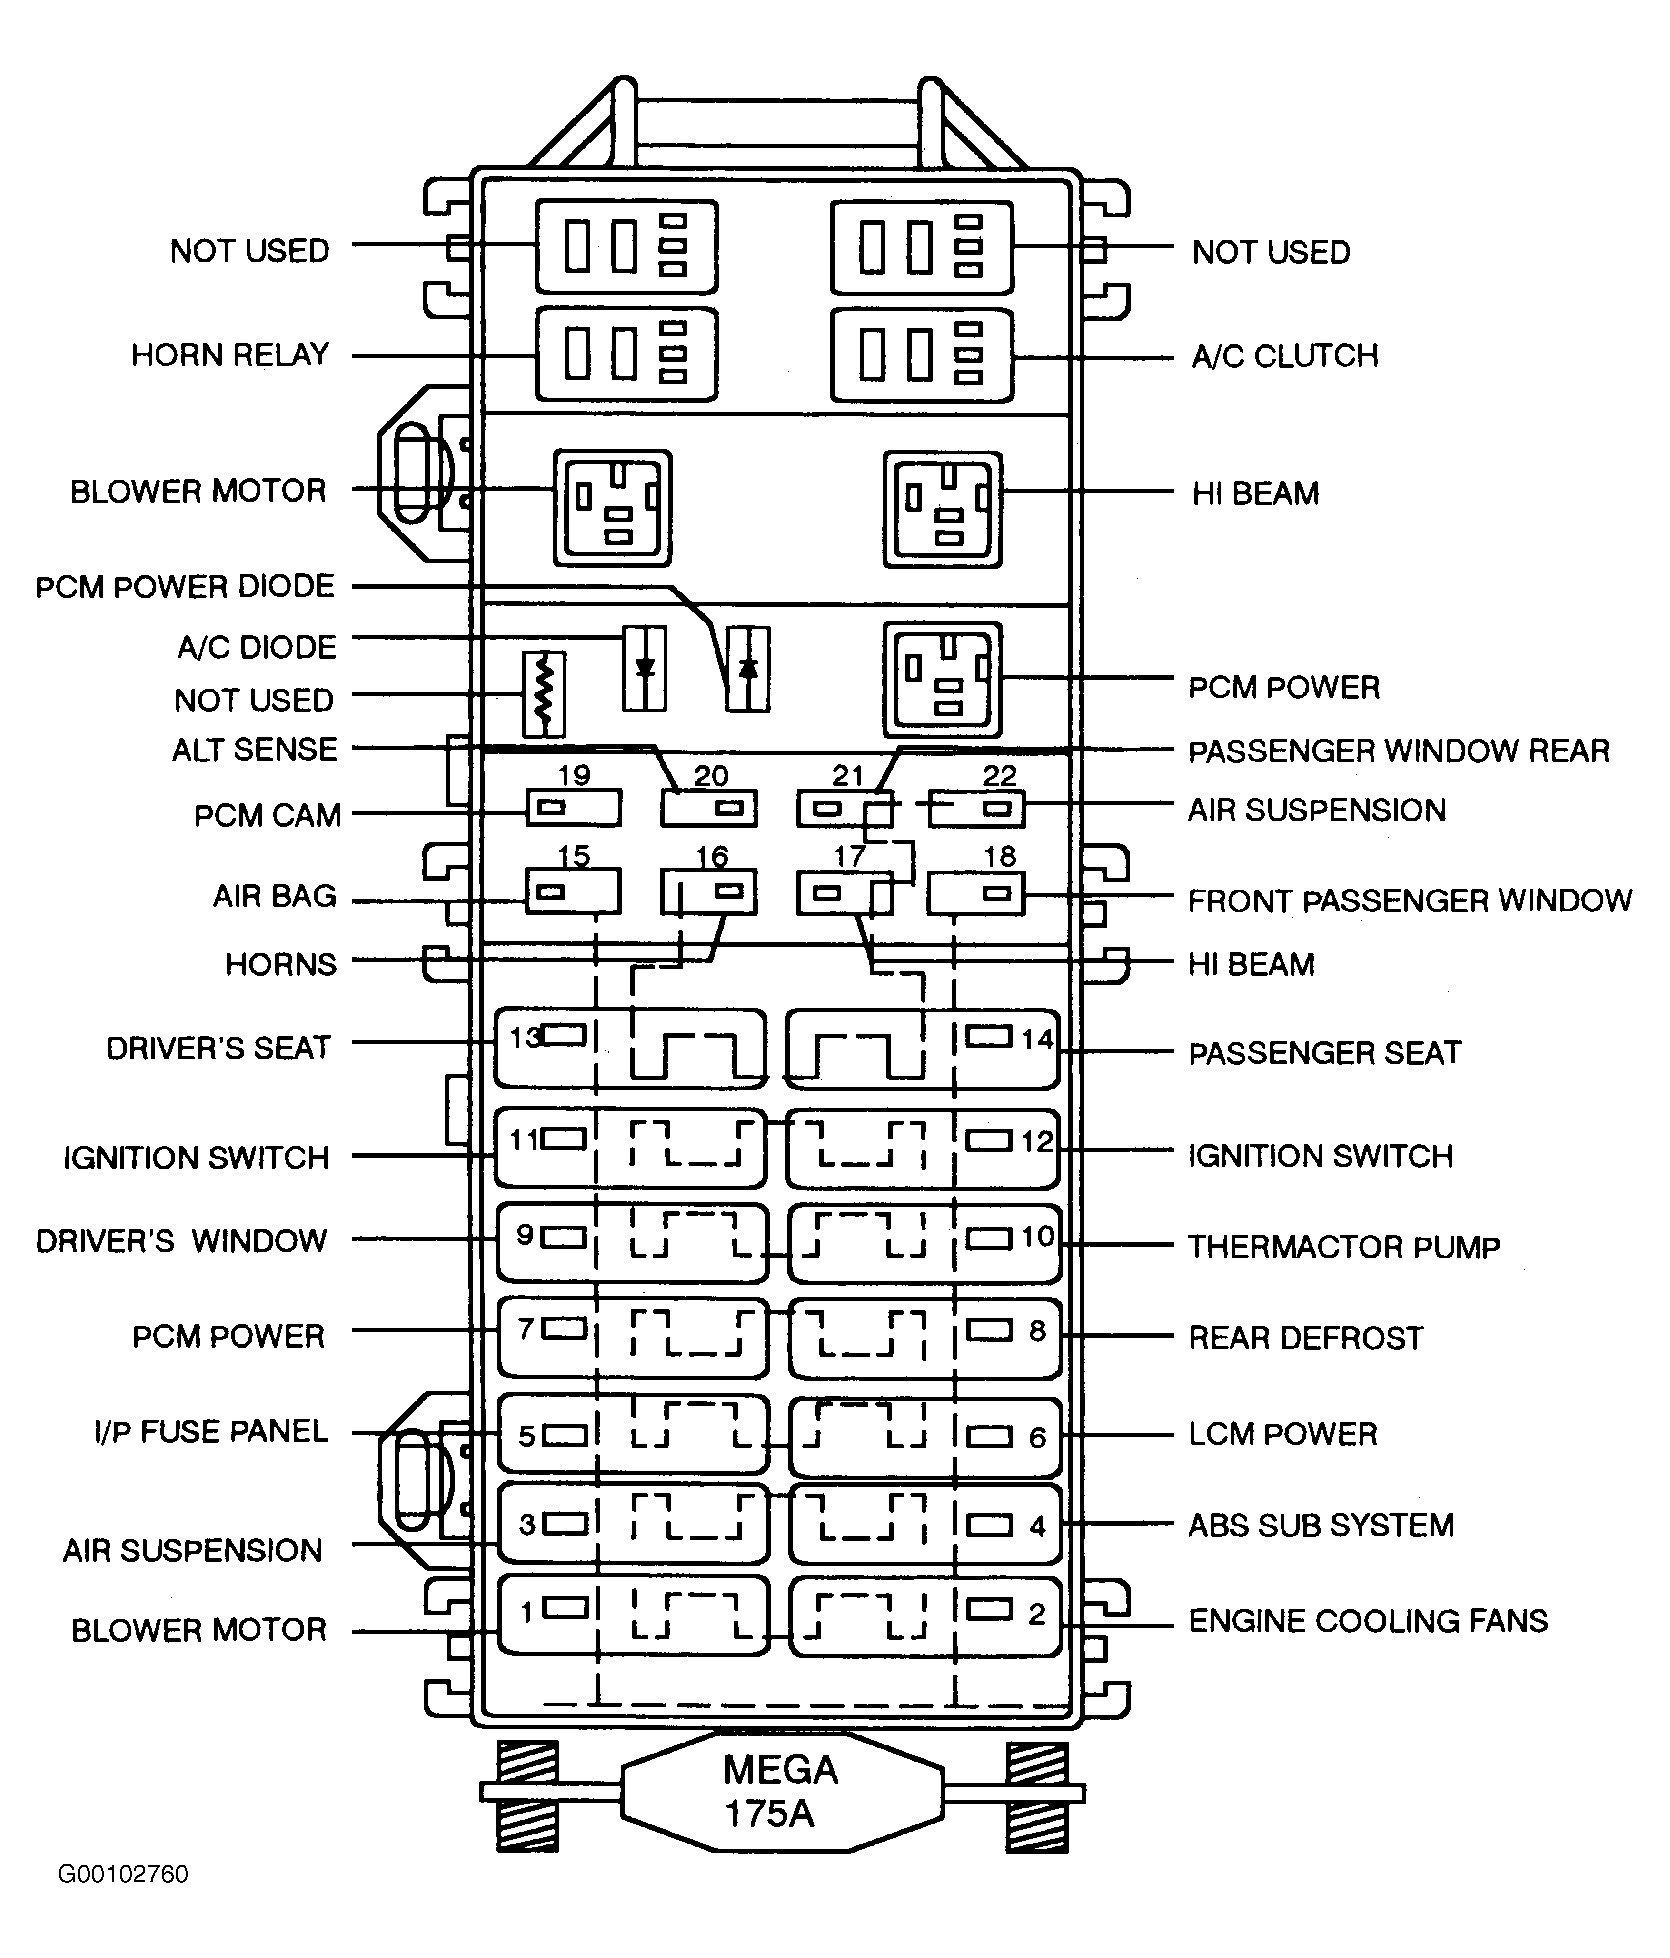 91 town car fuse diagram simple wiring diagram 2000 lincoln 1996 lincoln fuse box [ 1670 x 1958 Pixel ]